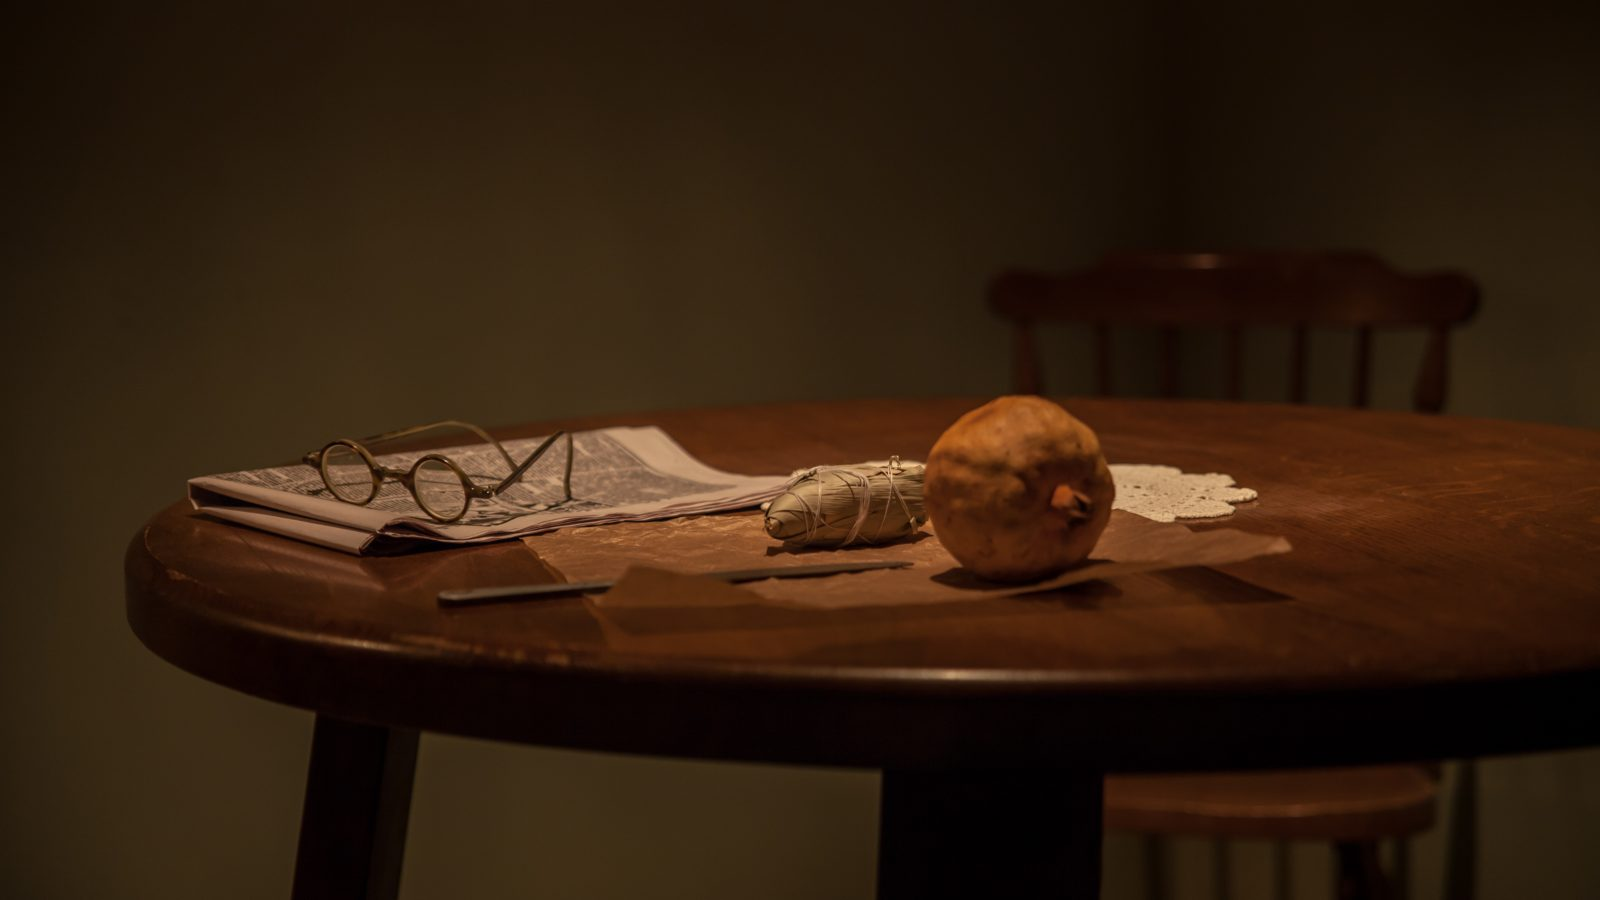 Glasses, newspaper and ball of string on a table,